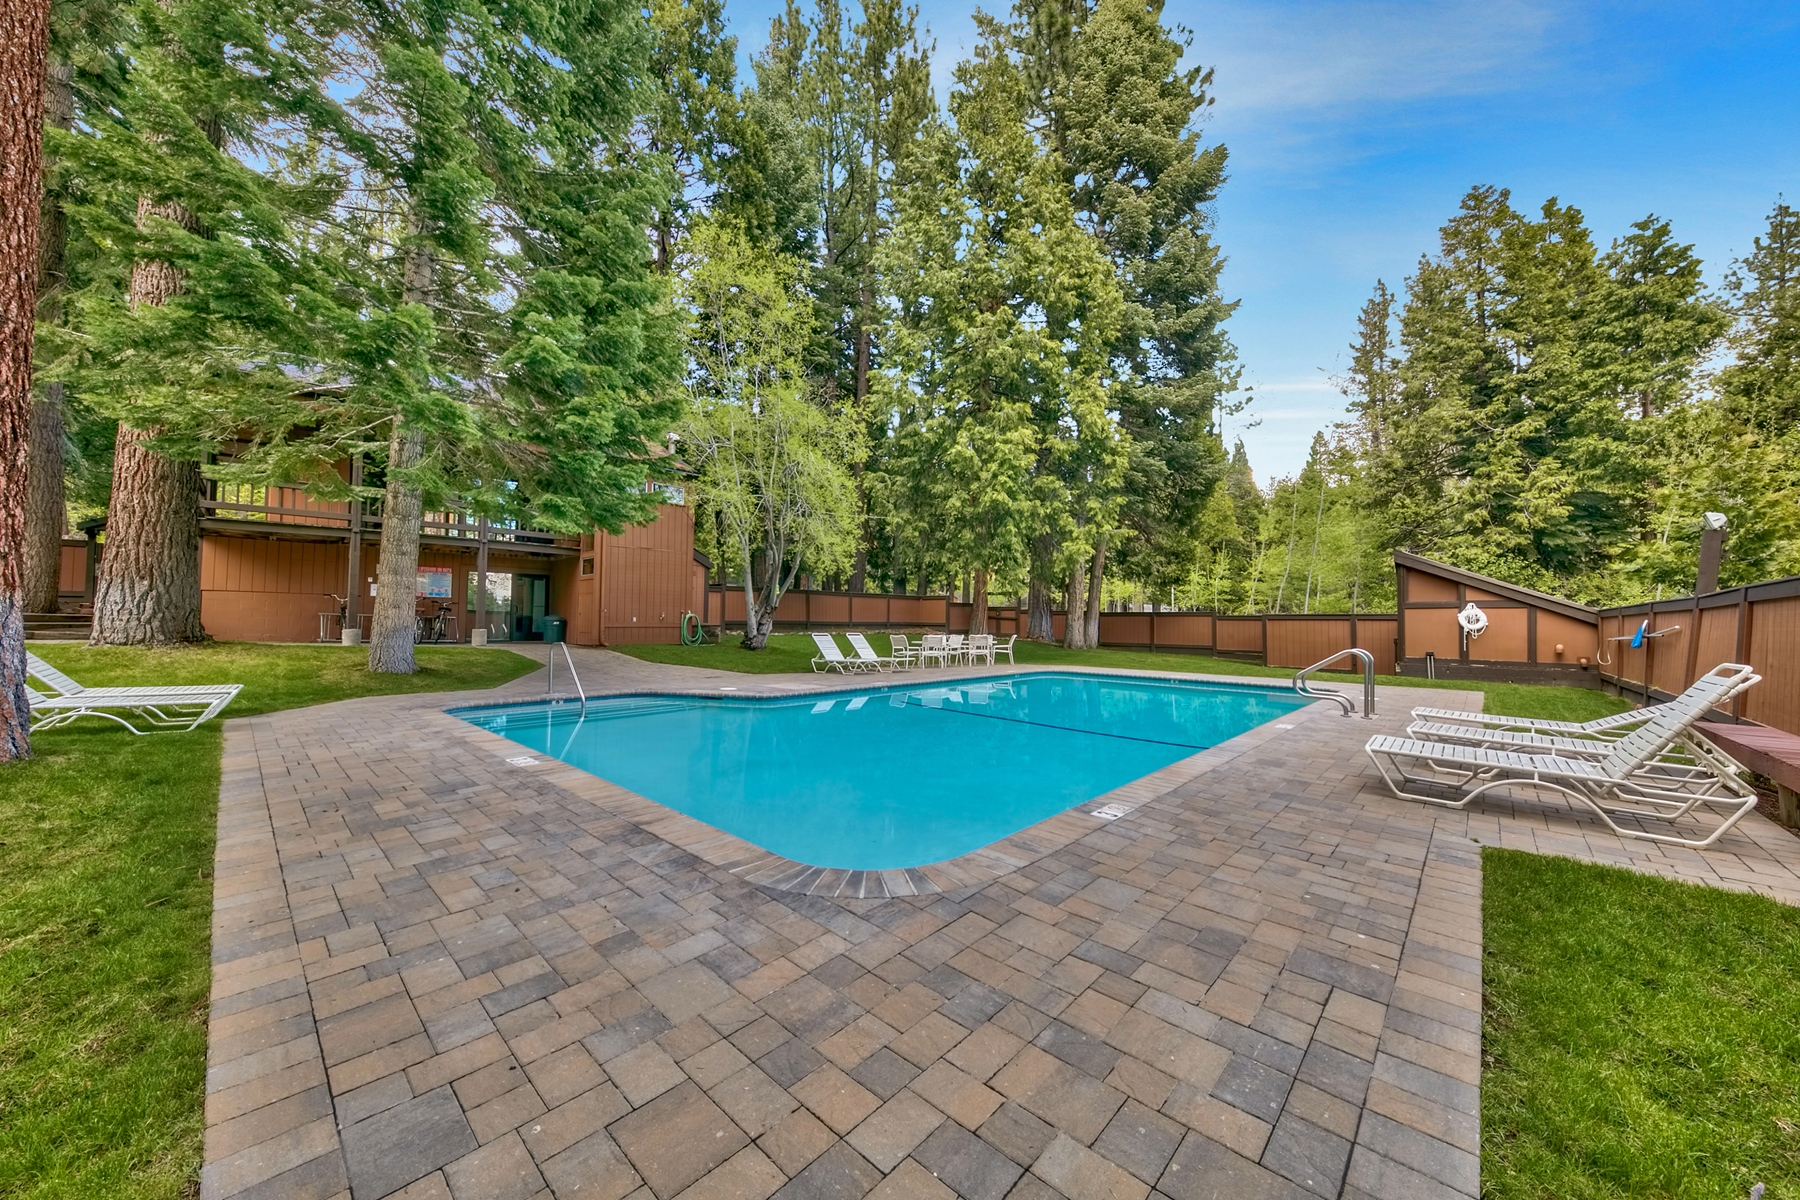 Additional photo for property listing at 2755 North Lake Boulevard #59, Tahoe City, CA 96145 2755 North Lake Boulevard #59 Tahoe City, California 96145 United States